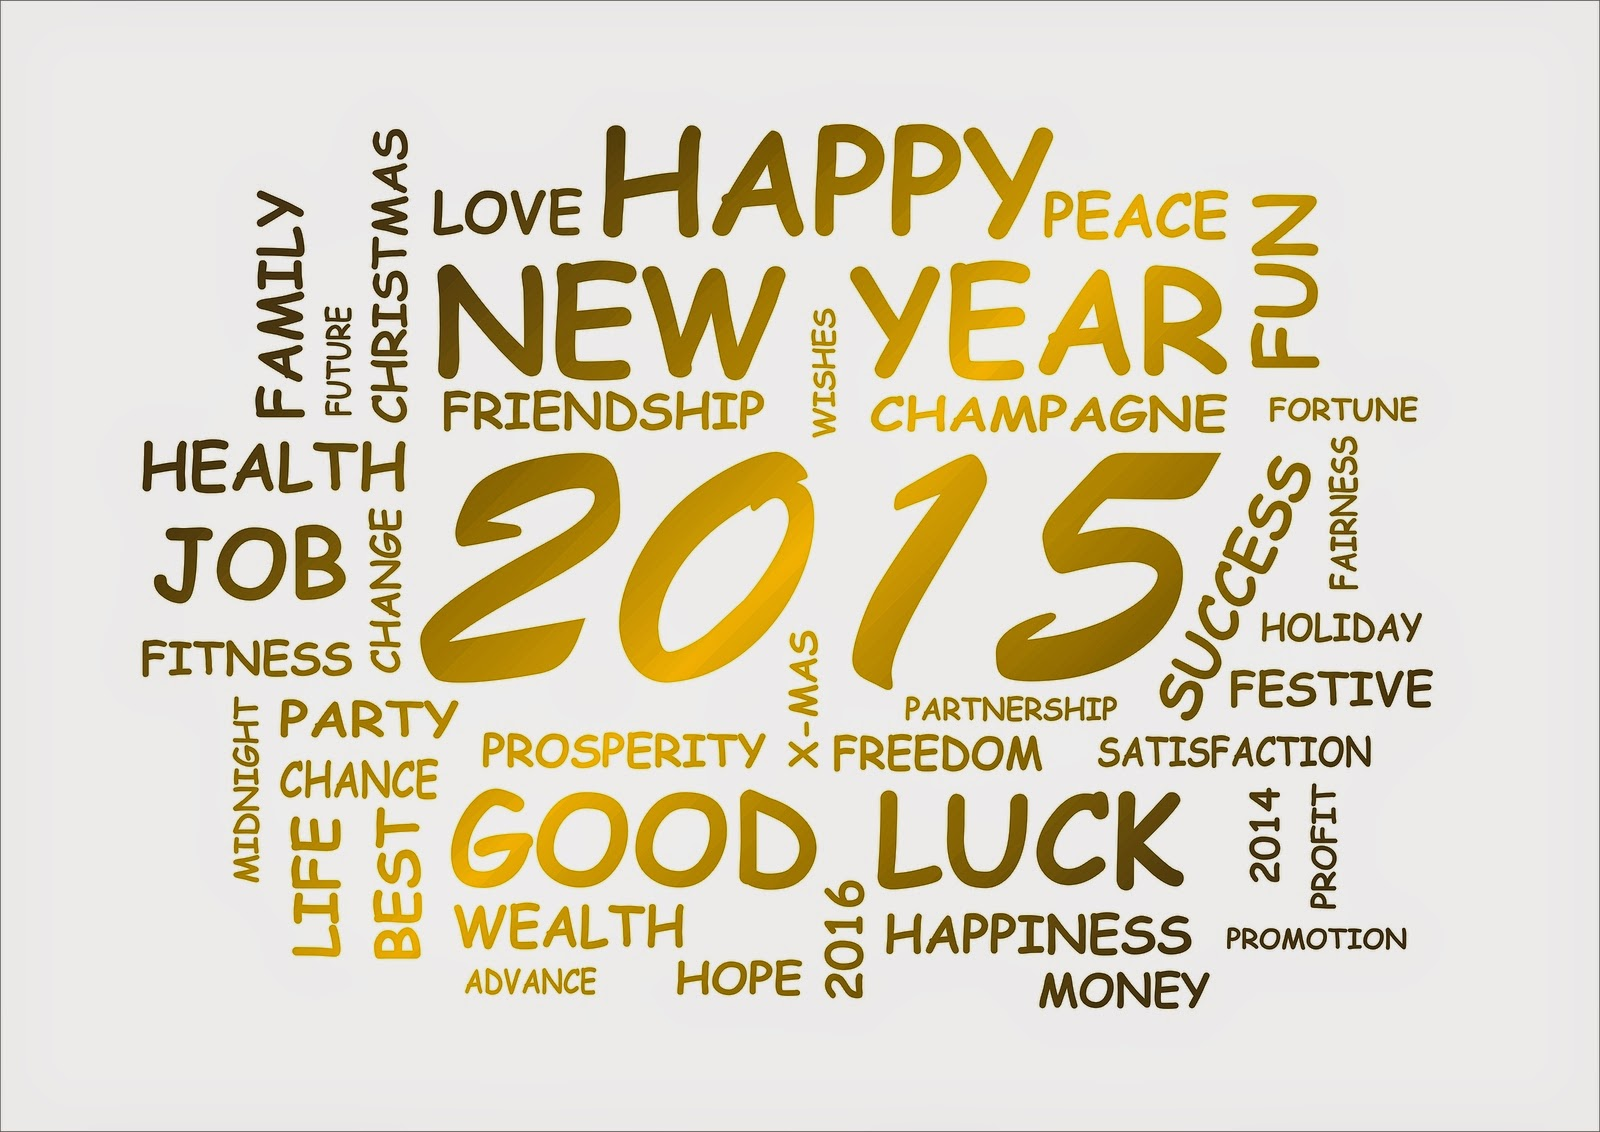 Happy New Year 2015 ! | Know-It-All